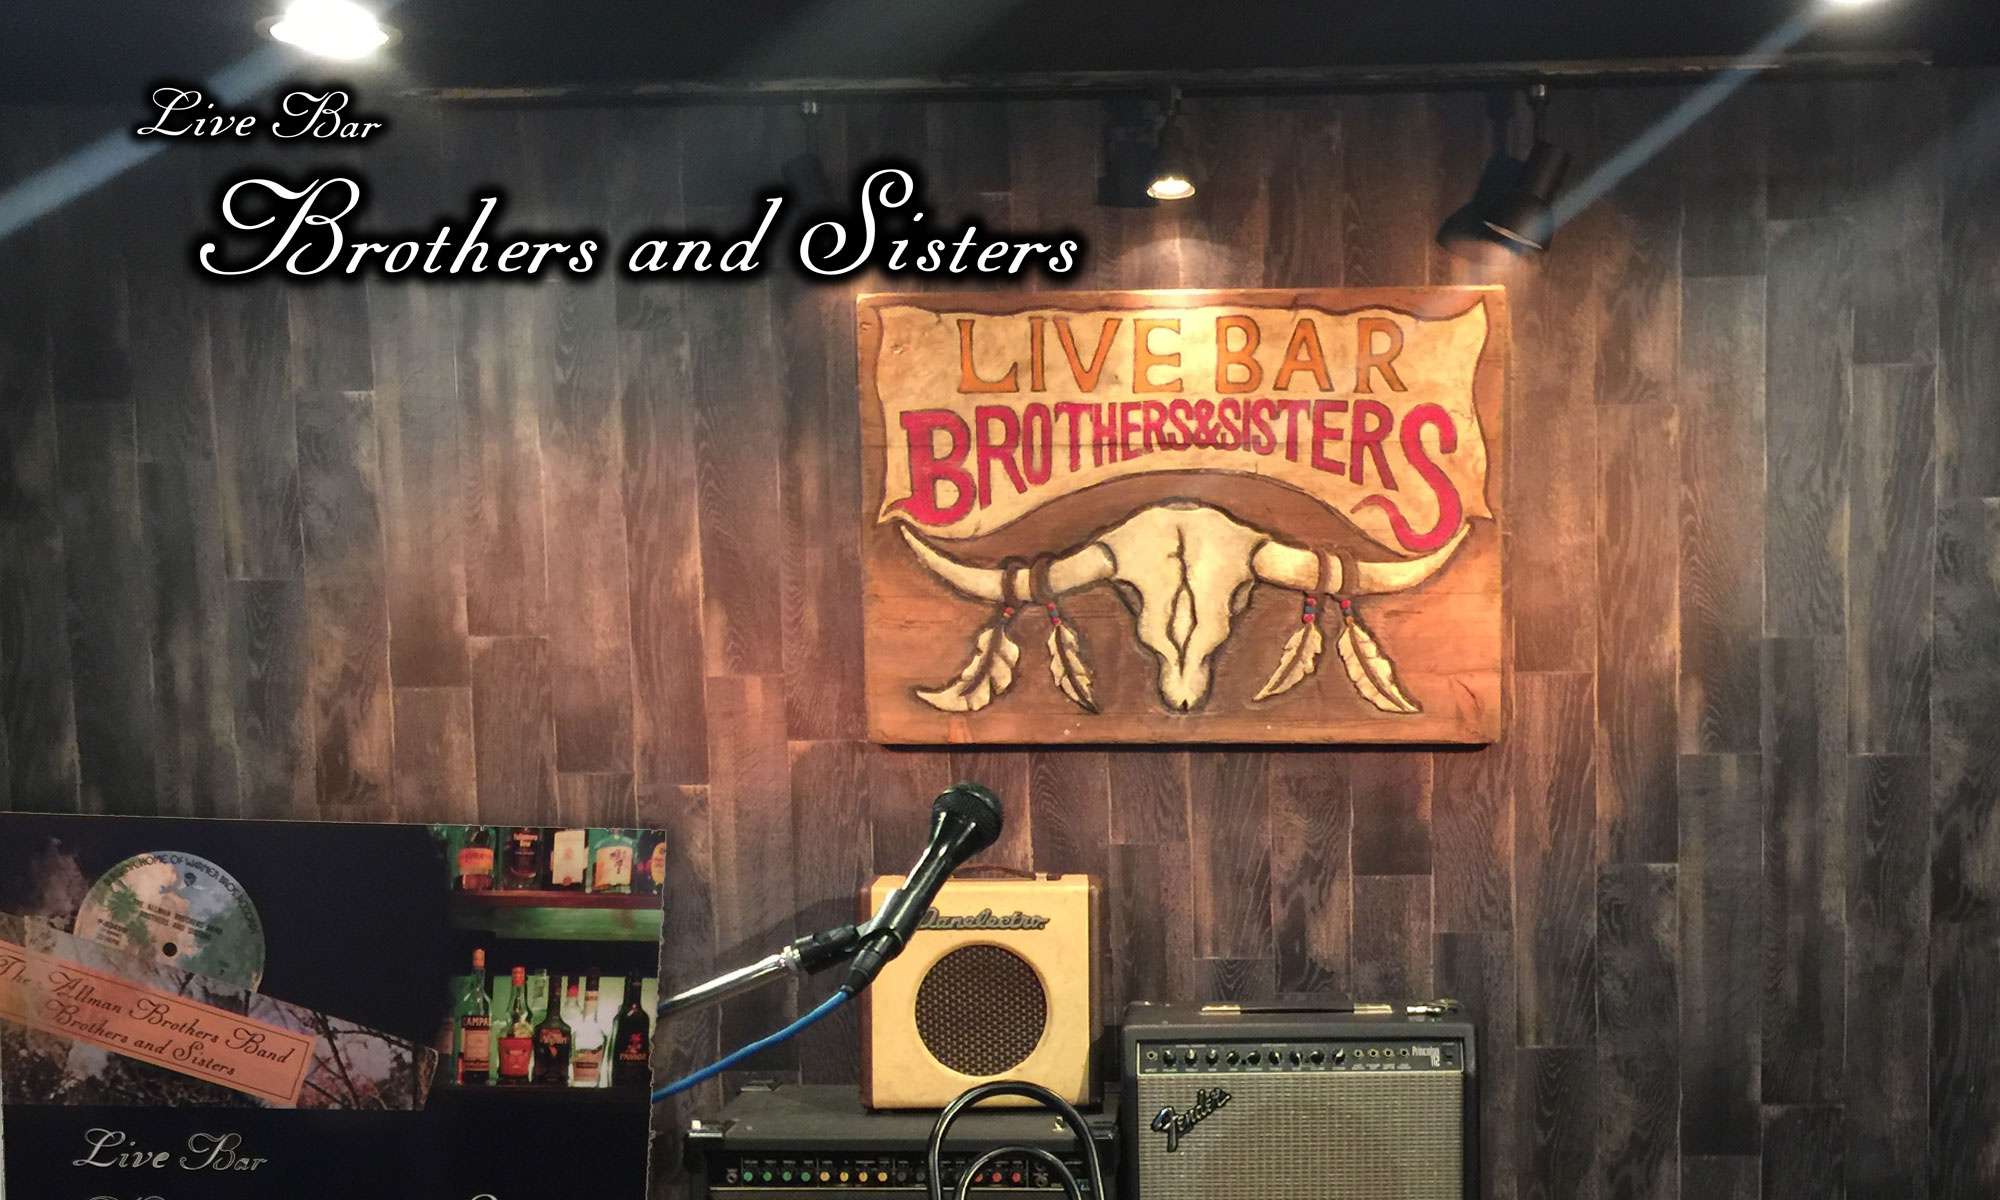 Live Bar Brothers & sisters